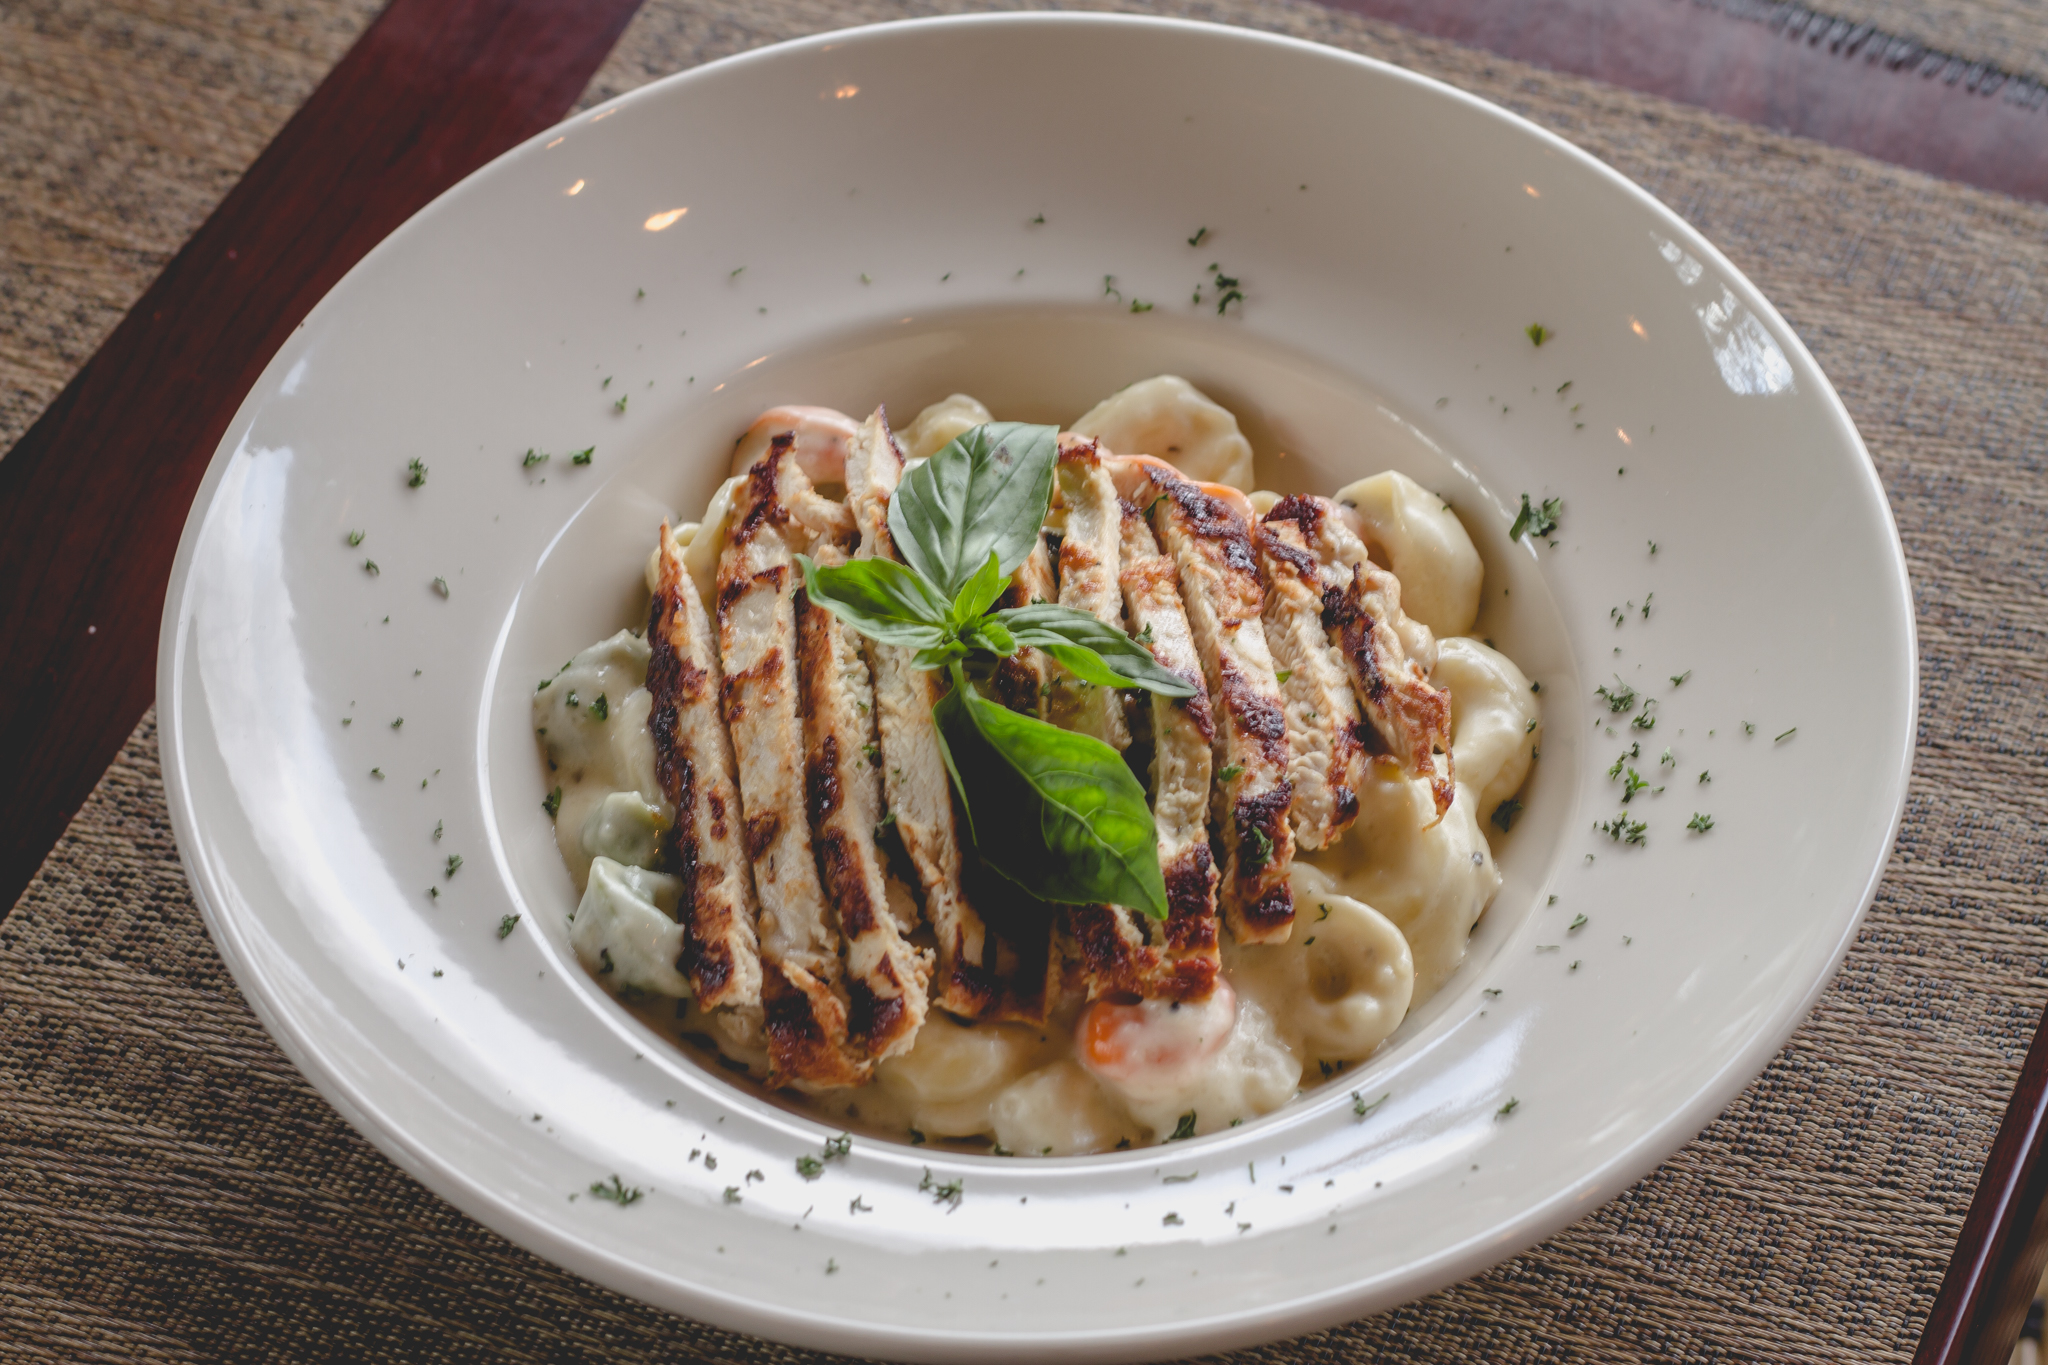 Tricolor Tortelini with Grilled Chicken in Alfredo Sauce